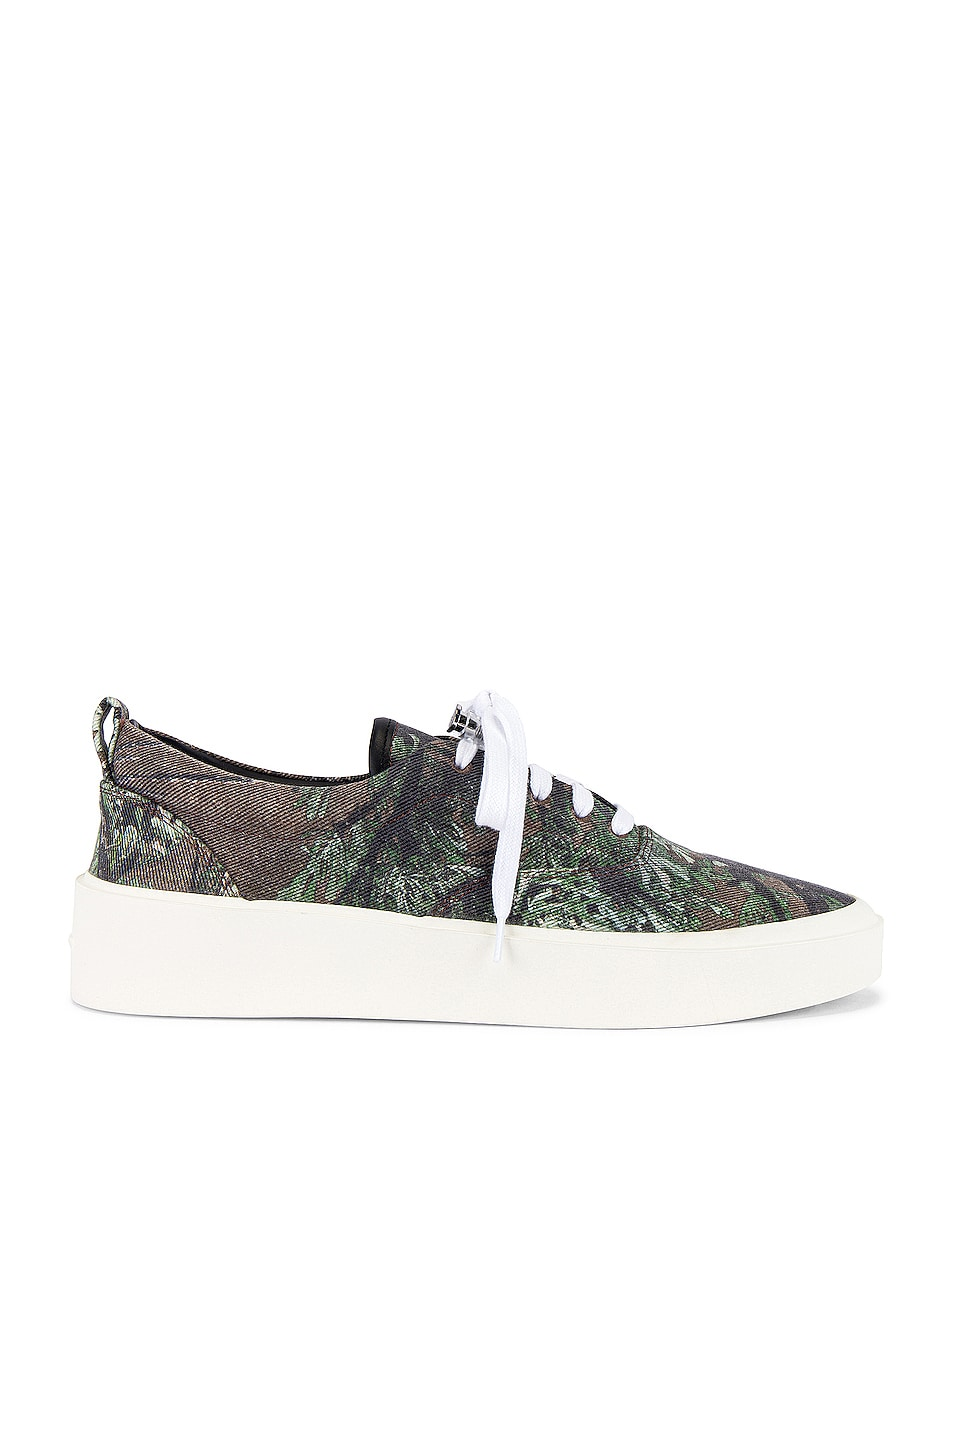 Image 2 of Fear of God 101 Lace Up Sneaker in Dark Prairie Ghost Camo